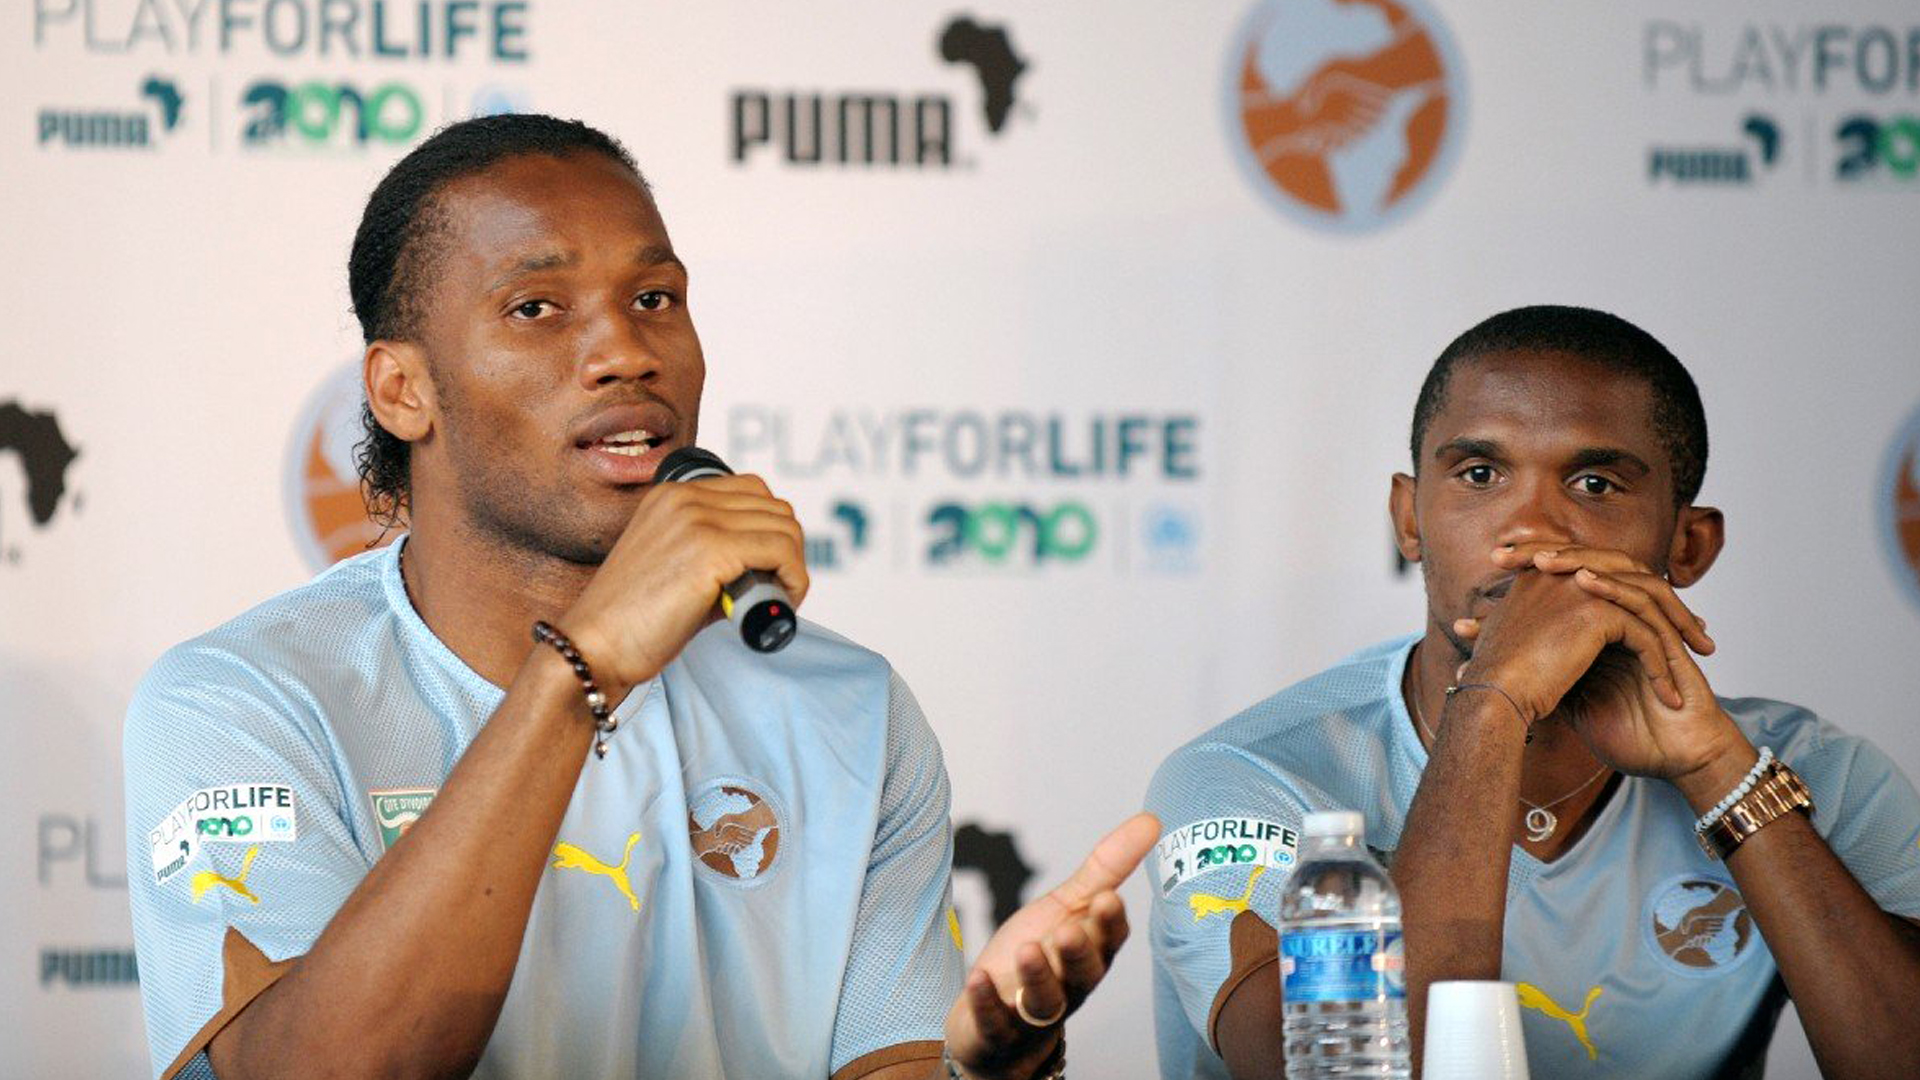 'Africa is not a laboratory' - Drogba joins Eto'o in denouncing 'racist' remarks by French doctors